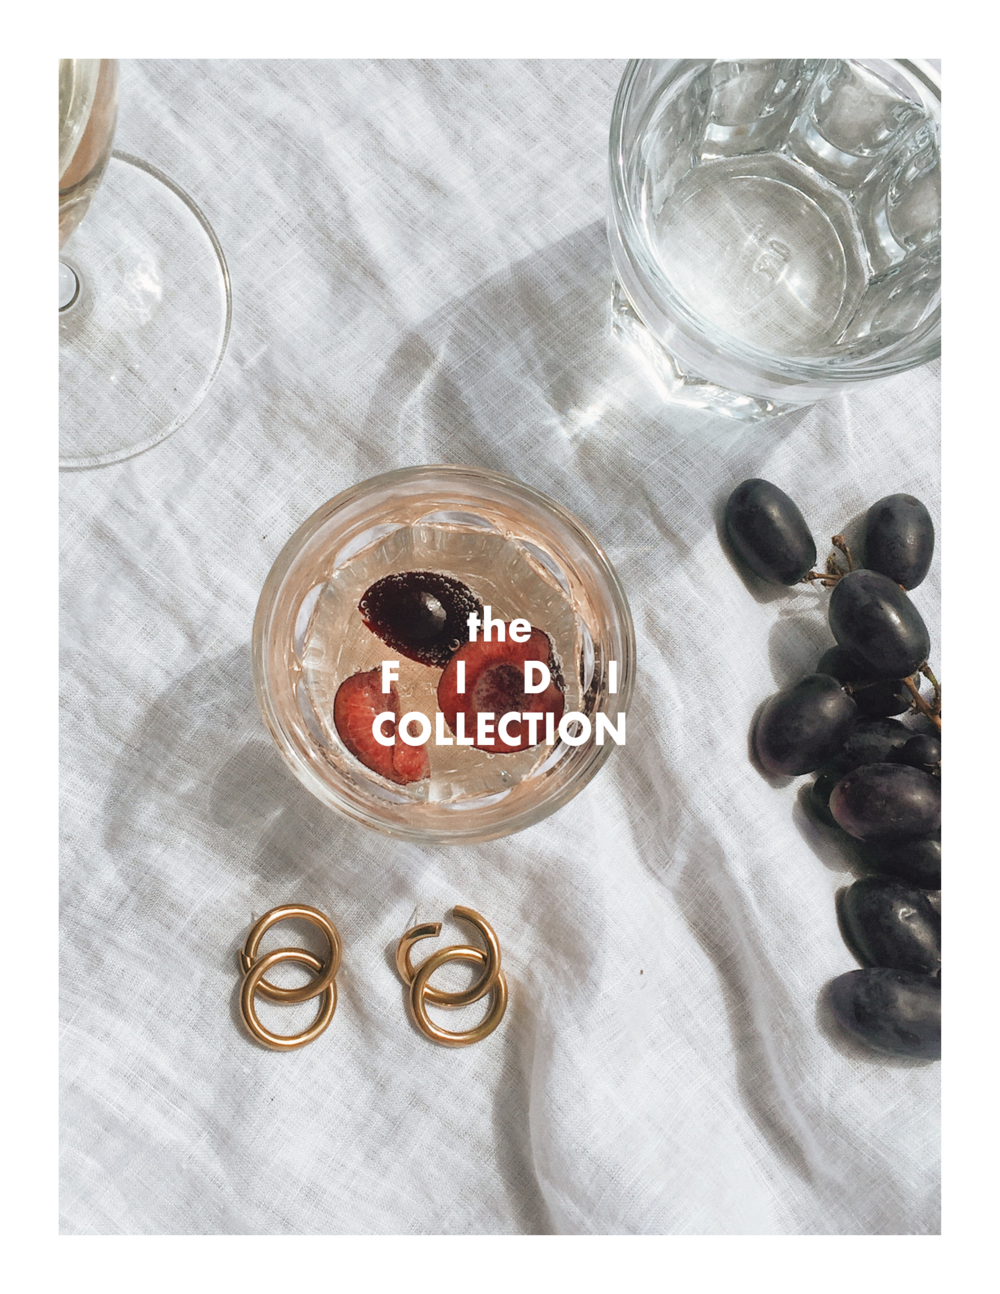 Handmade gold double hoop earrings with wine glass and cherries